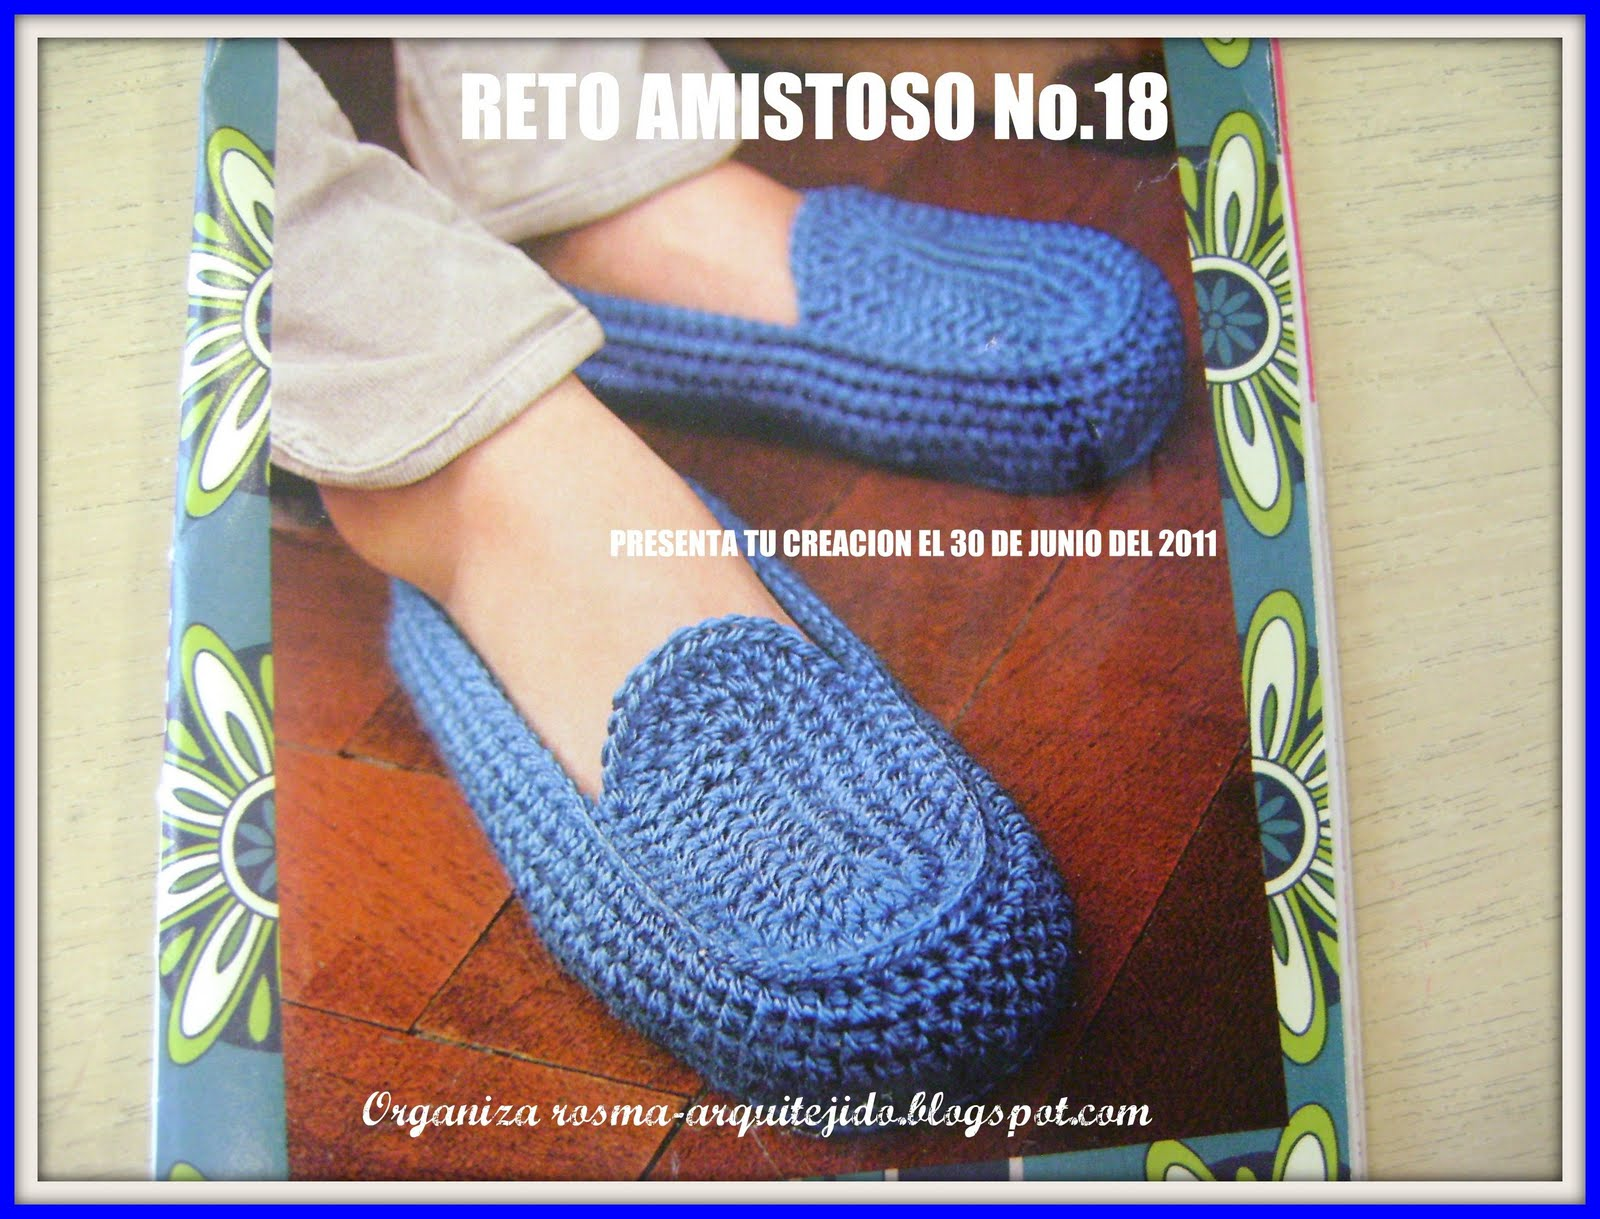 Reto amistosos No. 18